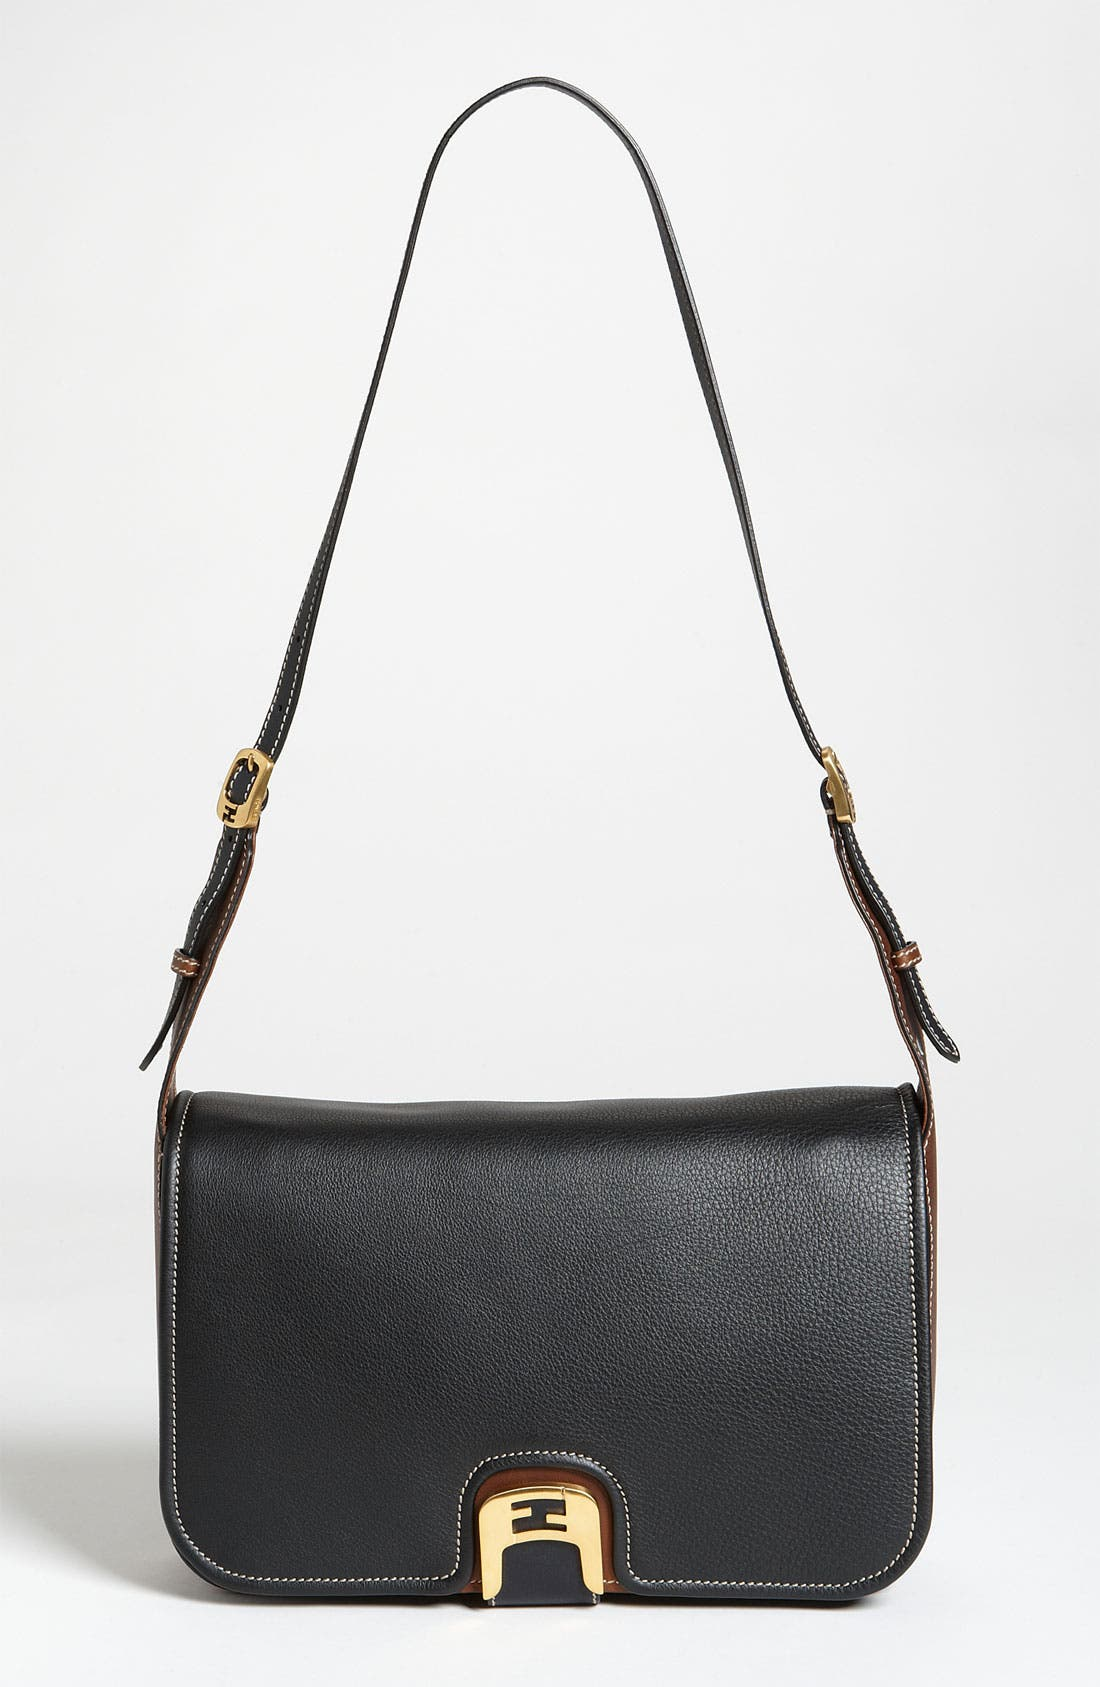 'Chameleon' Leather Shoulder Bag,                             Main thumbnail 1, color,                             001